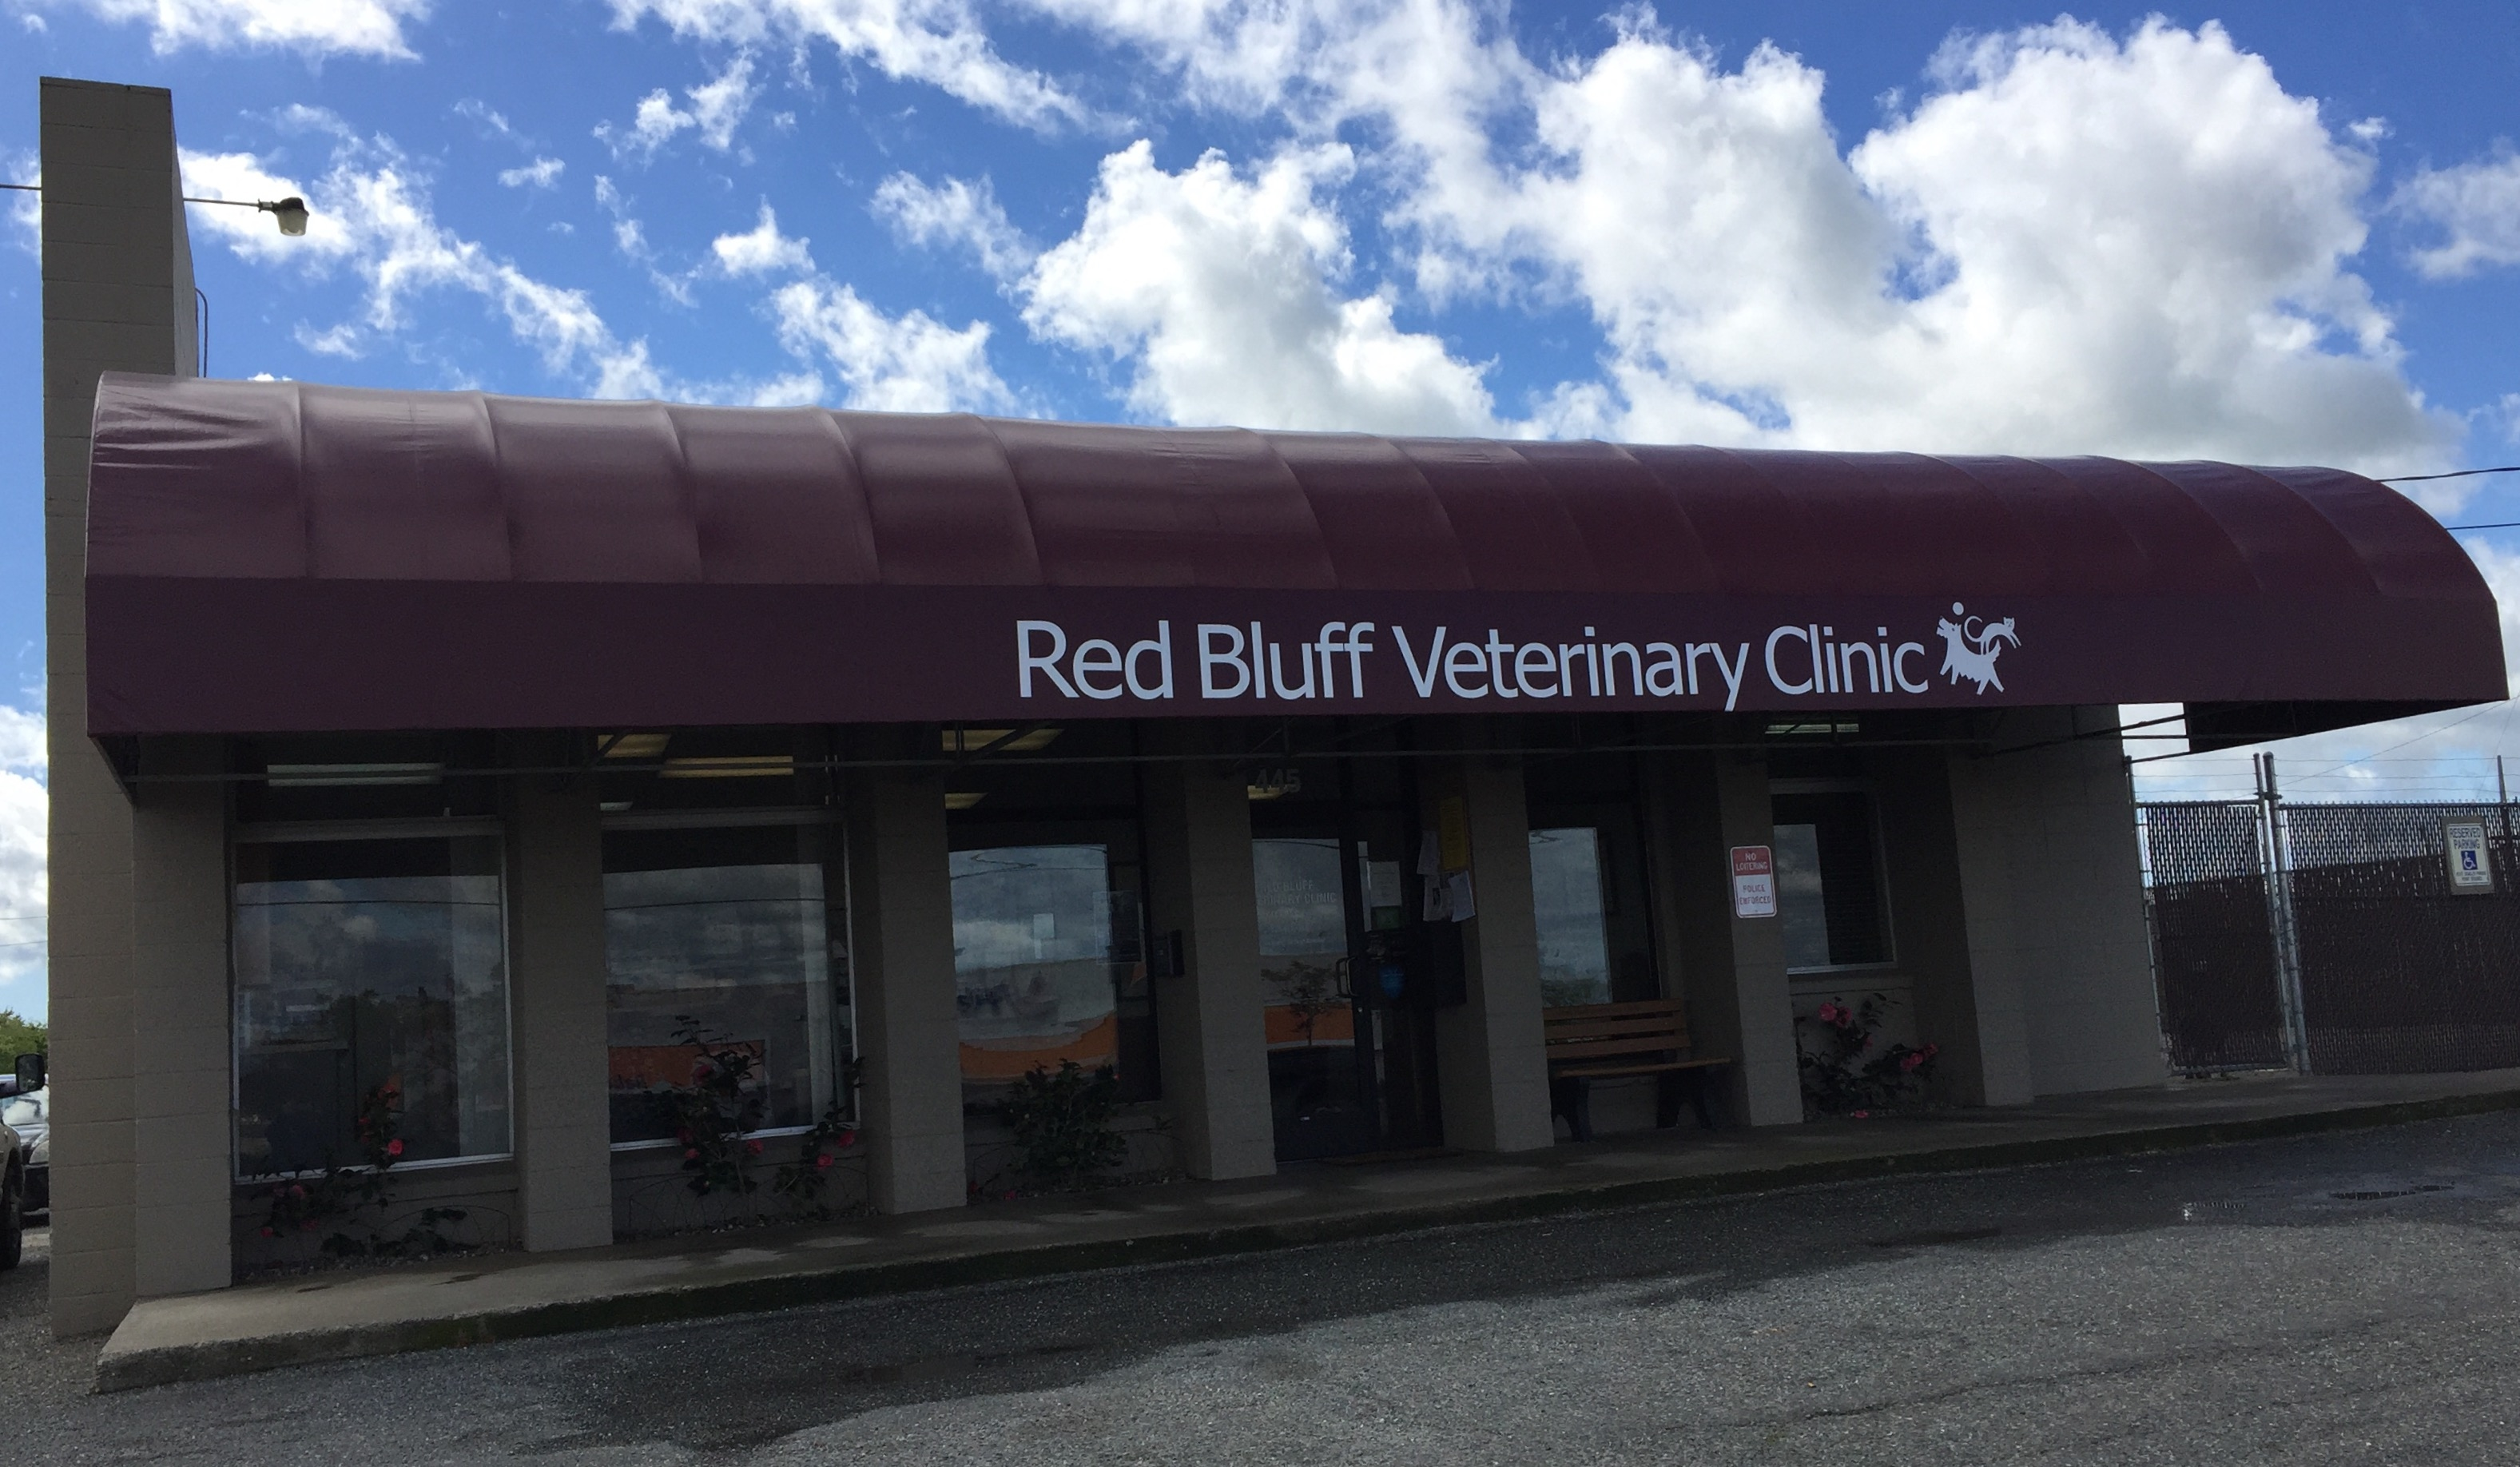 Red Bluff Veterinary Clinic image 1